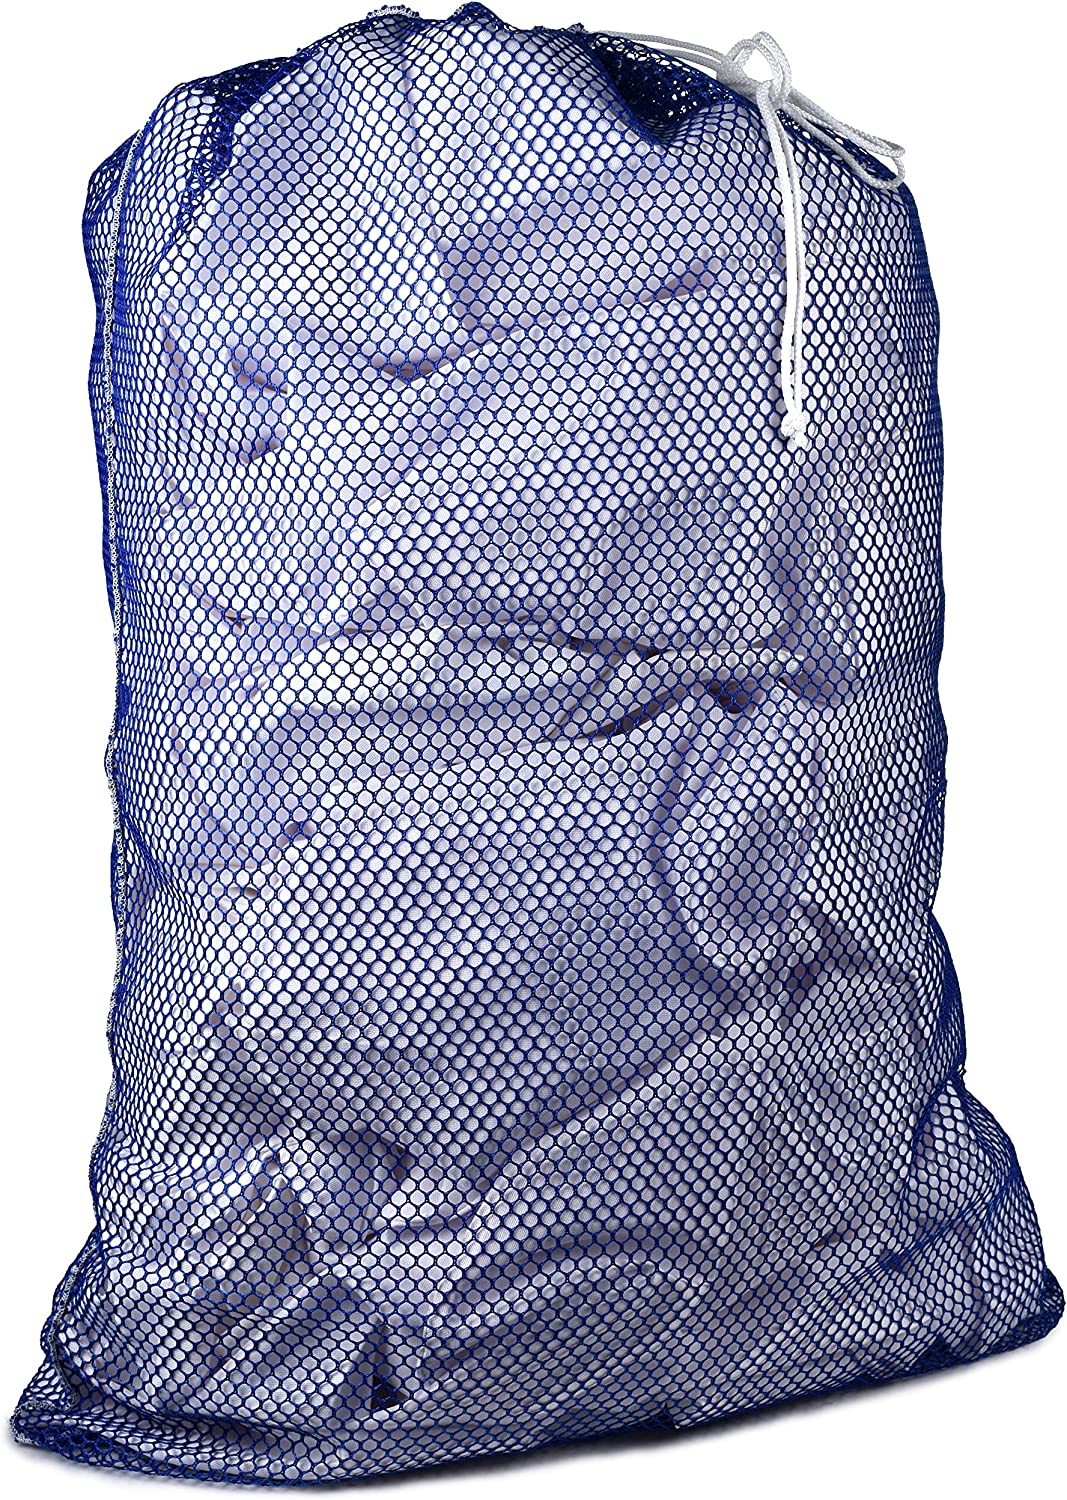 Commercial Super sale period limited Mesh Laundry Bag - Sturdy Material Long-awaited with Drawstri